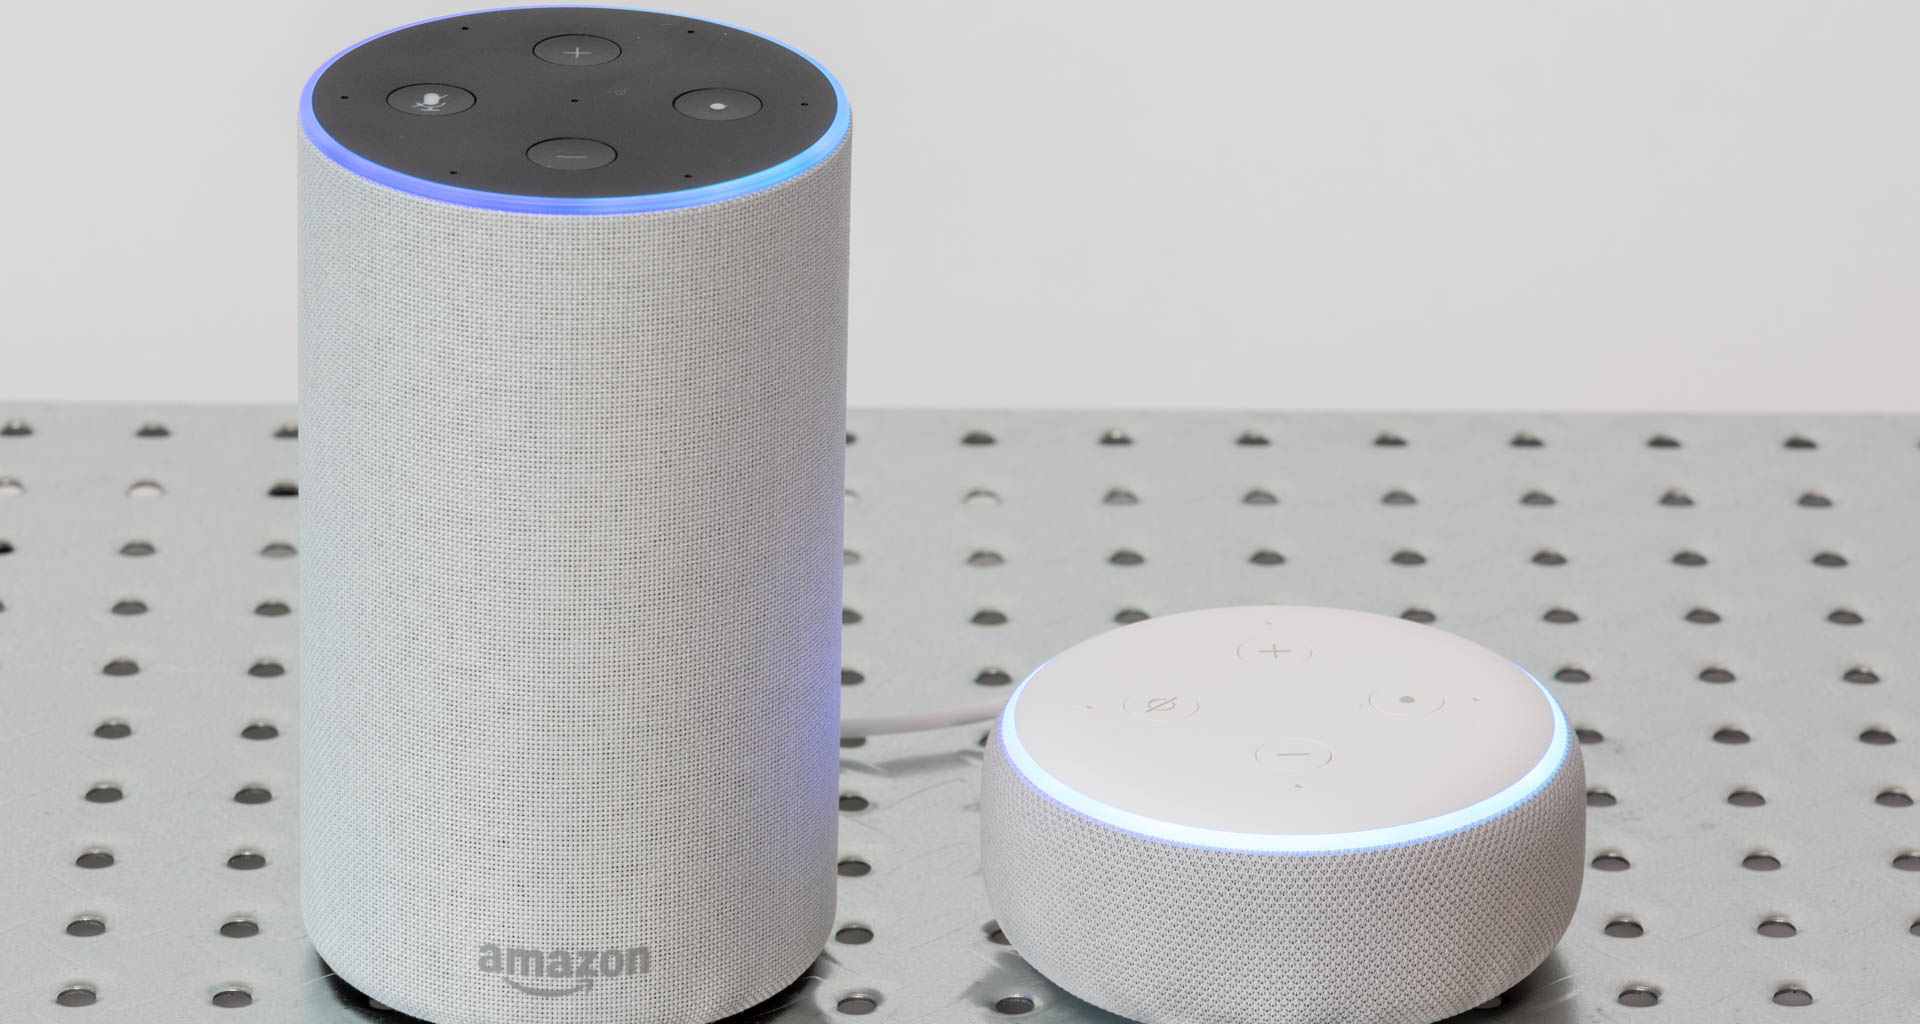 Amazon Echo (left, 2nd generation shown) and Echo Dot (3rd generation shown) speakers enable easy access to the Alexa digital assistant. Image: Digitized House.